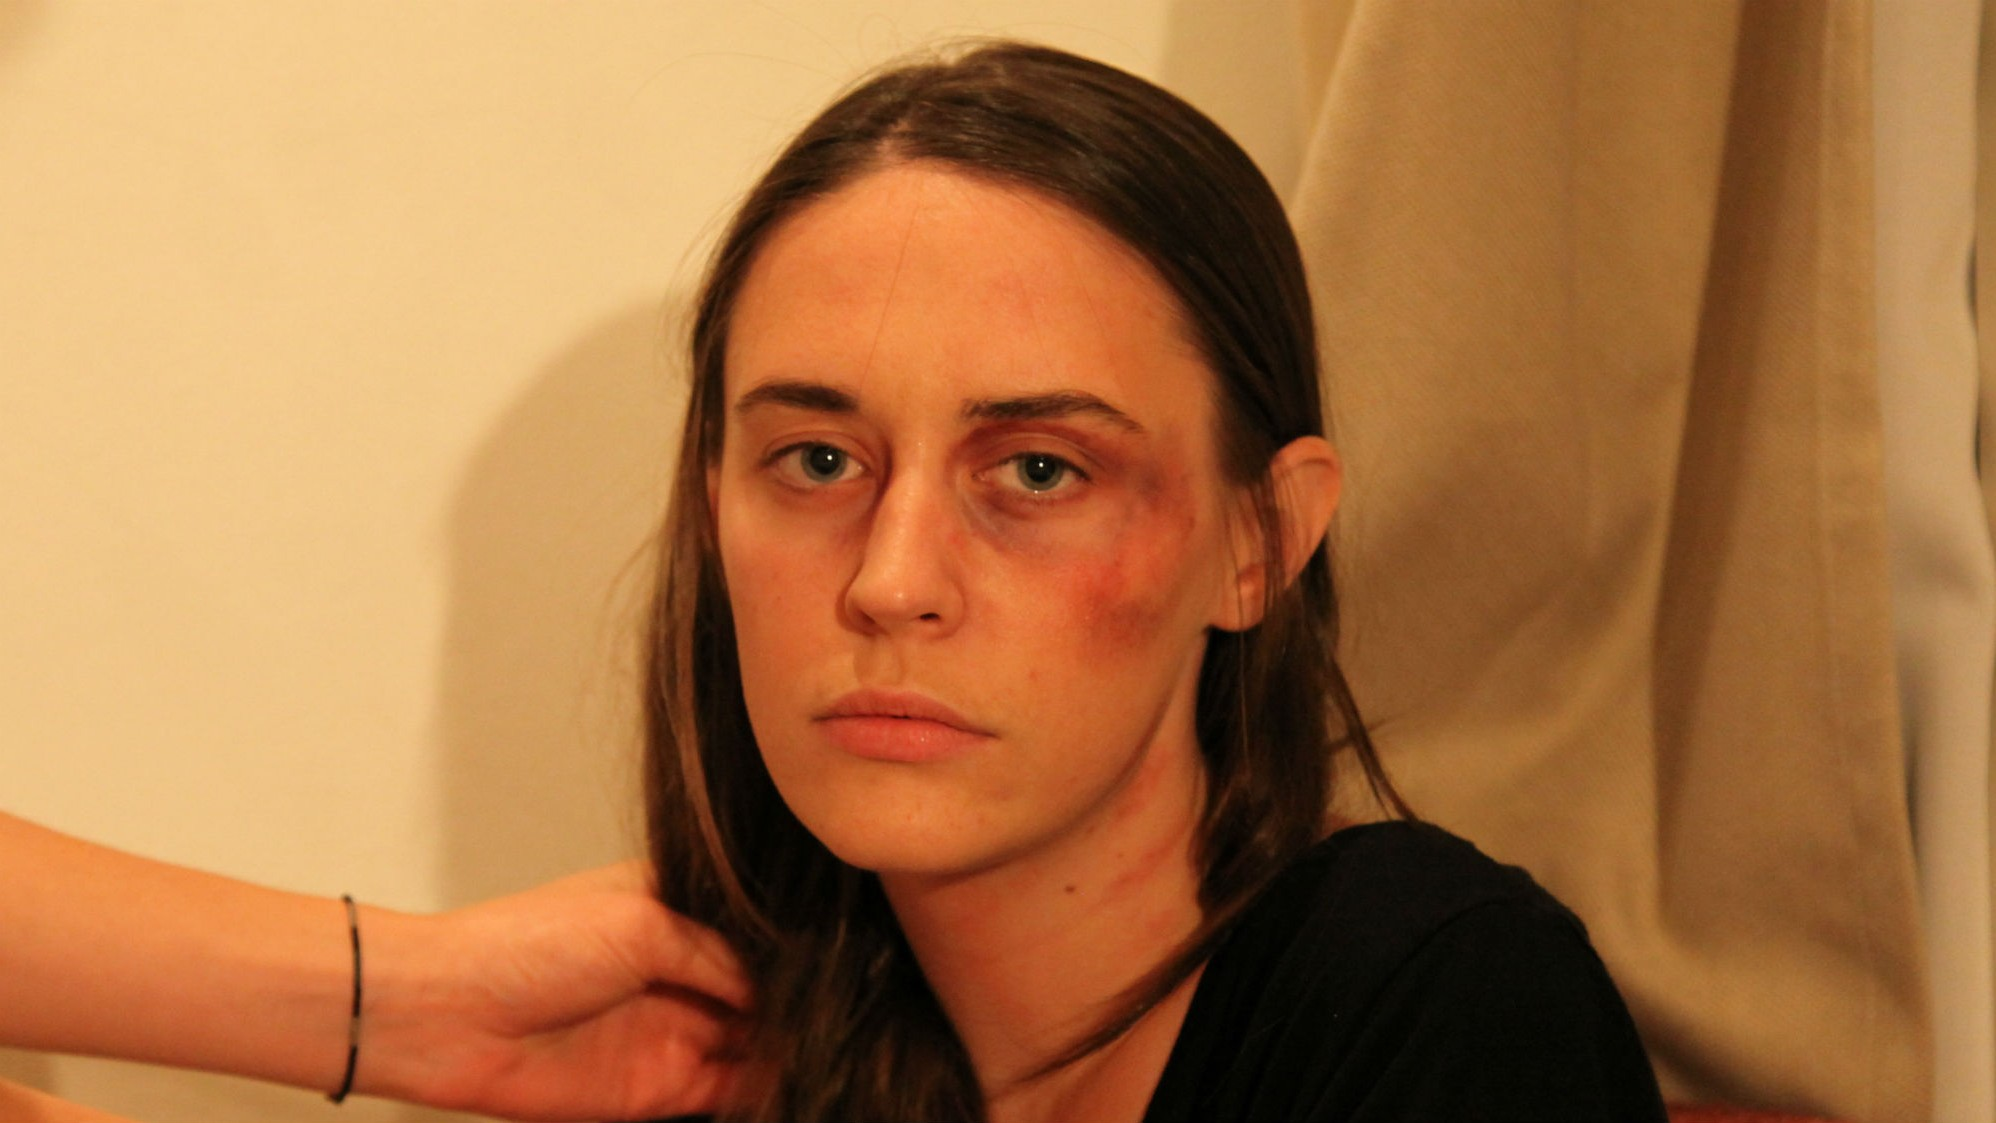 Tinder Blocked Anti-Violence Campaign that Made Woman Look Beaten